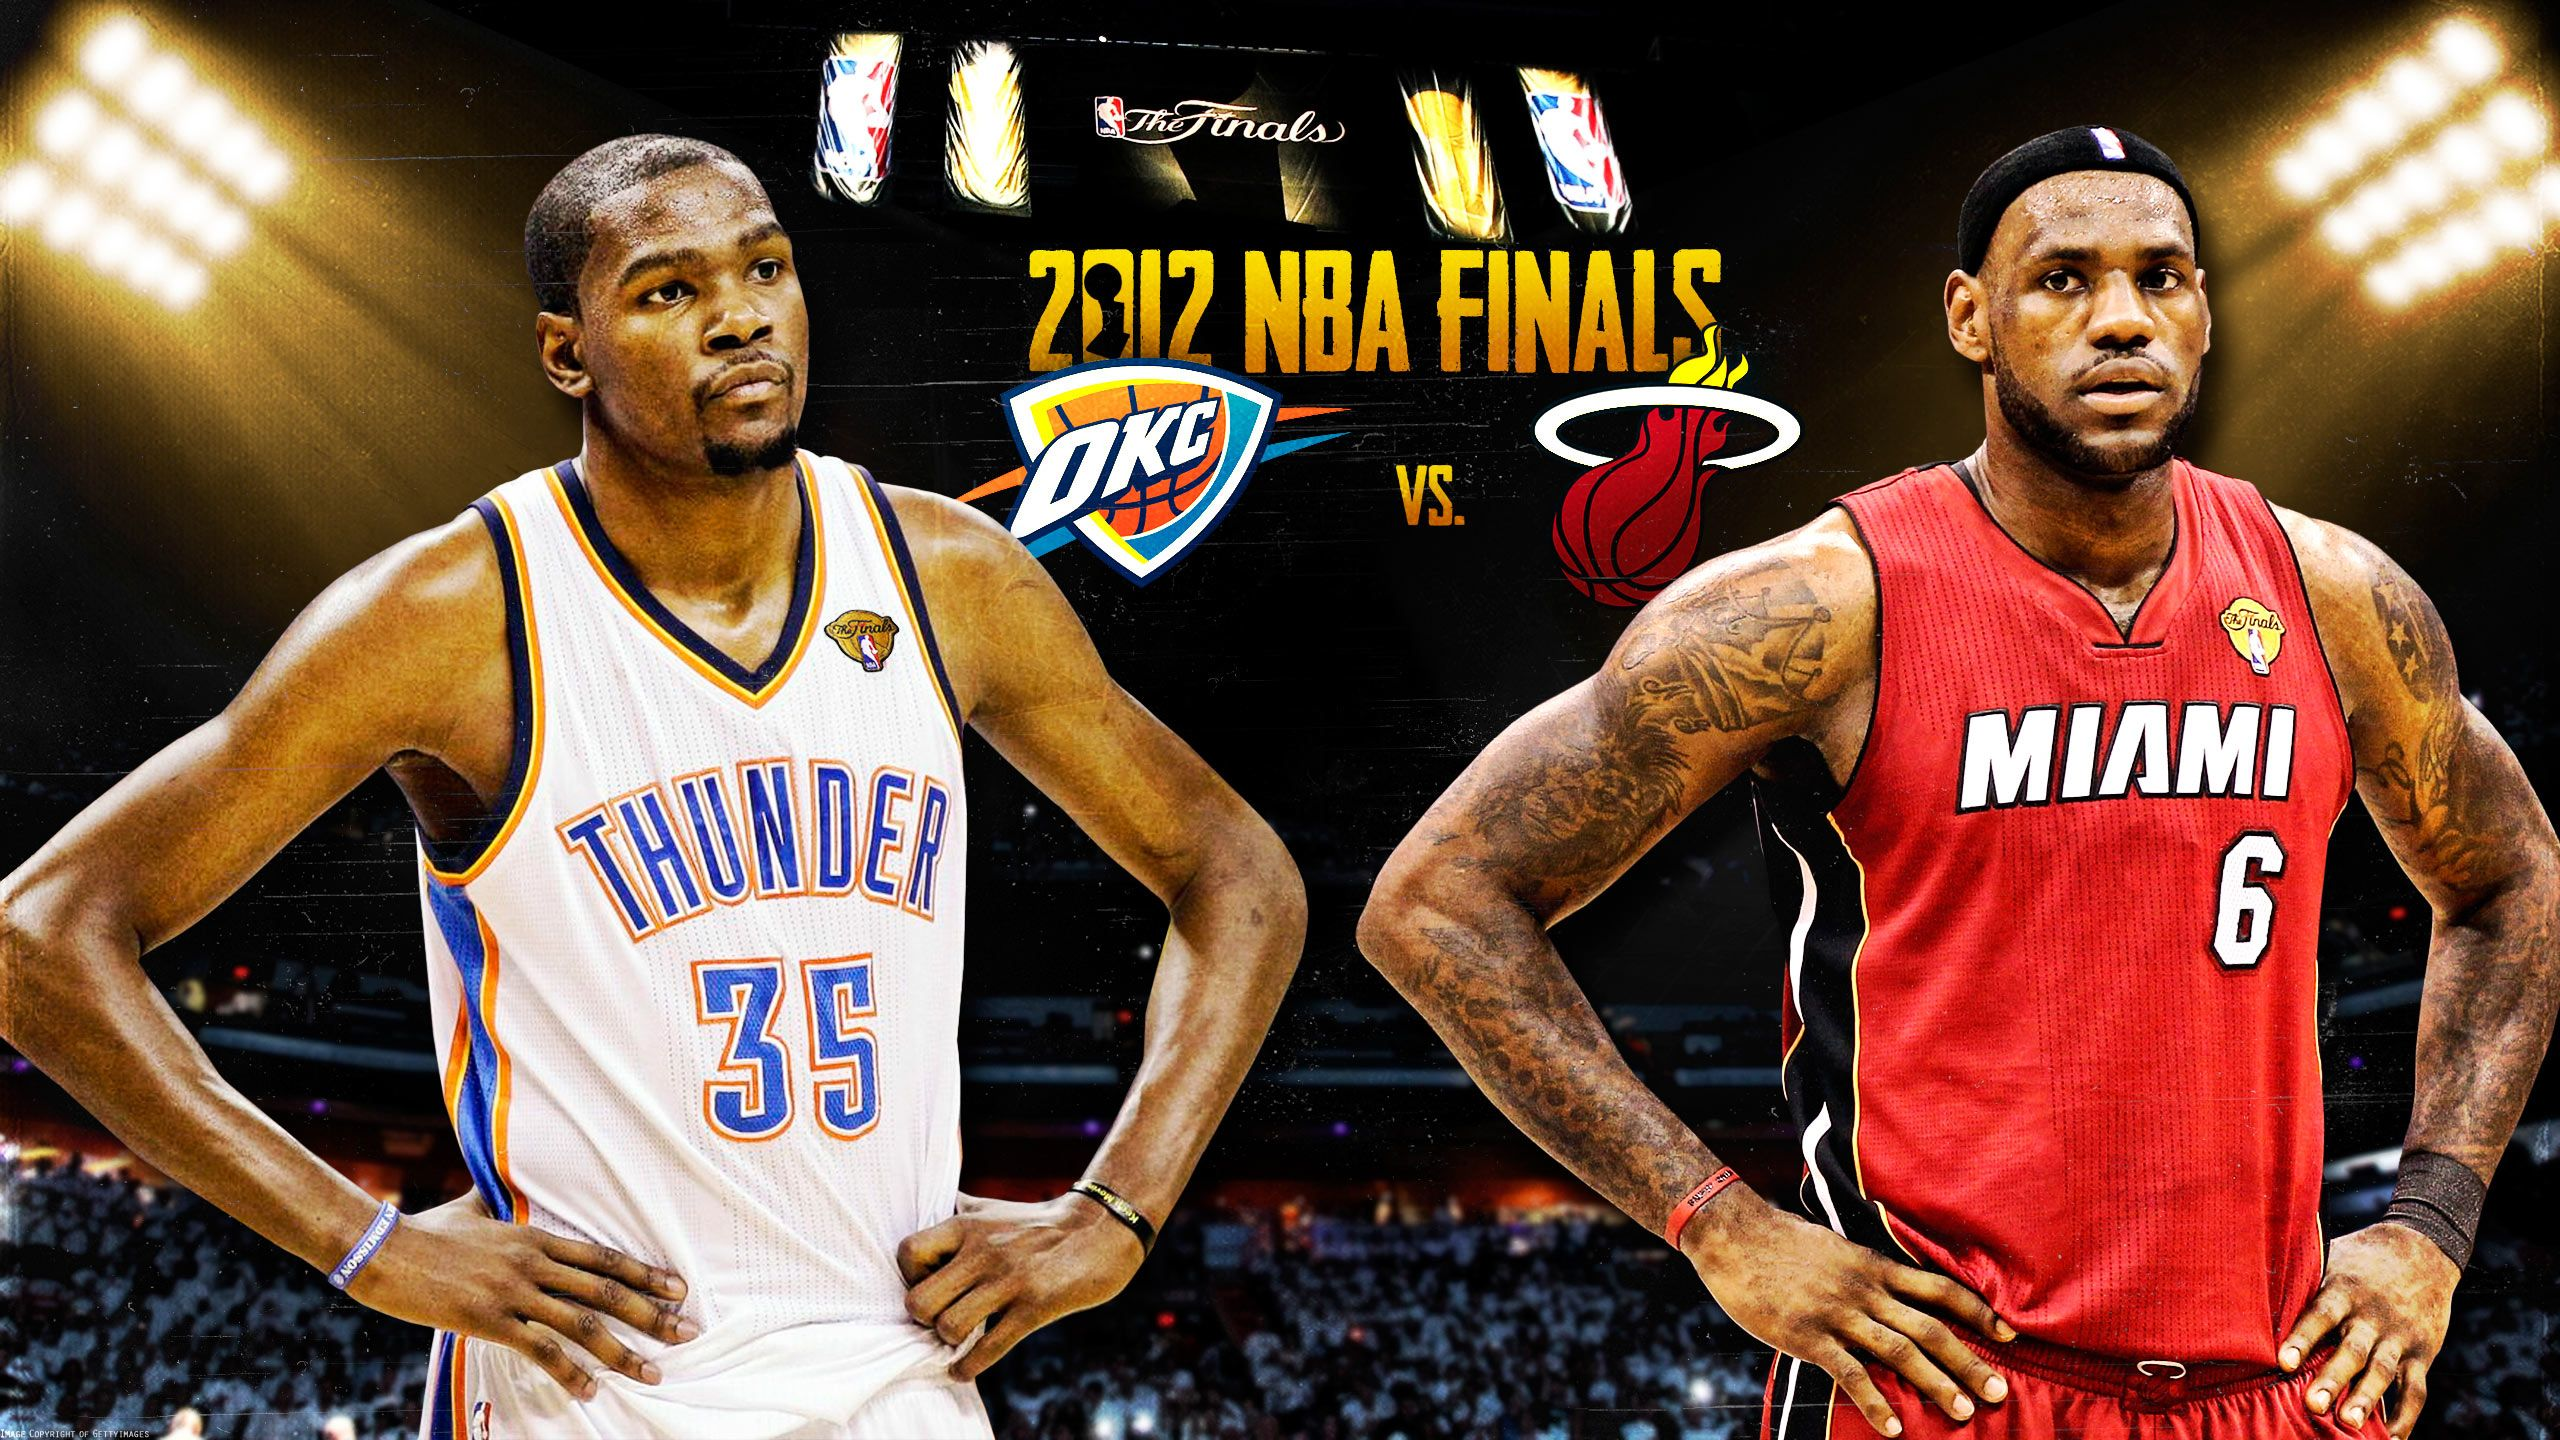 2560x1440 Durant James 2012 NBA Finals 2560×1440 Wallpaper | Basketball ...